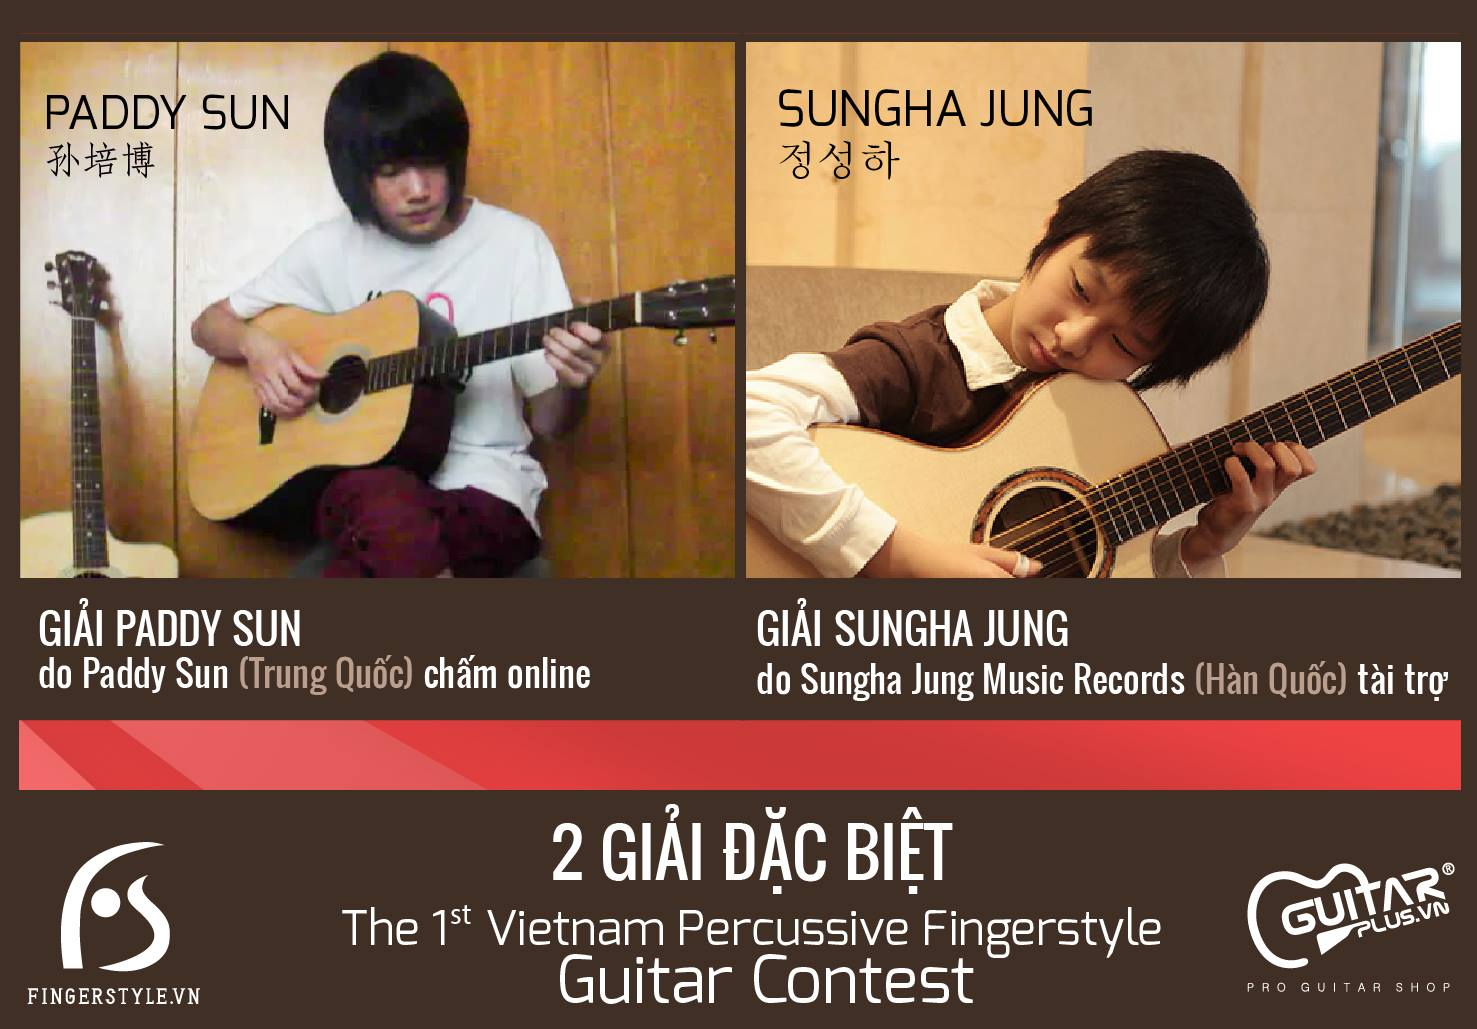 [Posters] The 1st Vietnam Percussive Fingerstyle Guitar Contest